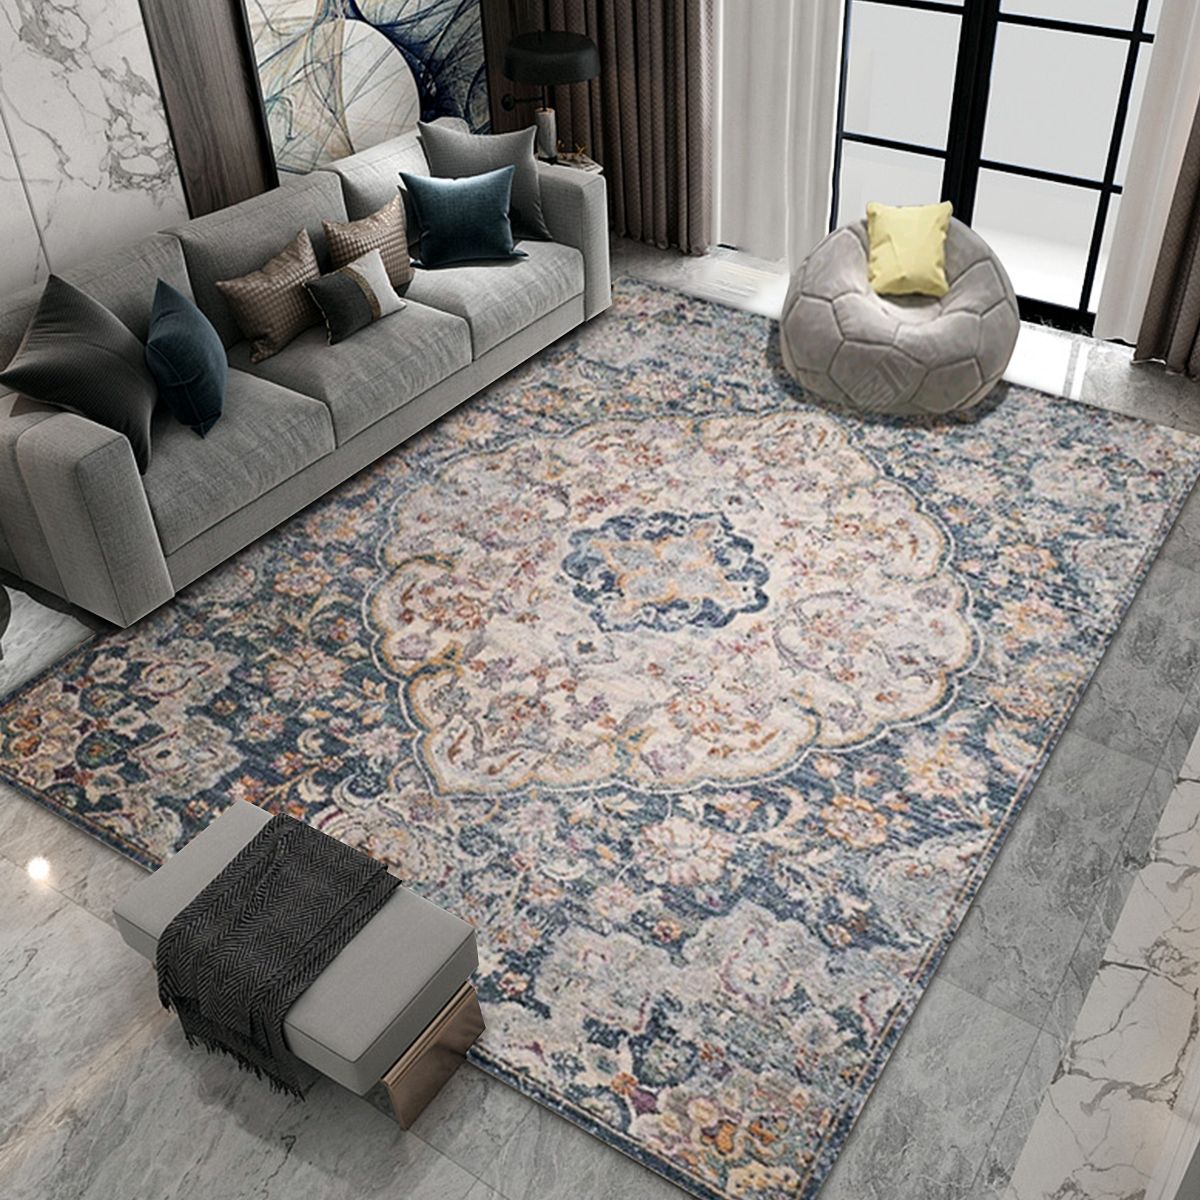 New Blue Grey Abstract Small Extra Large Floor Carpet Area Rugs Mats Bedroom ℑ